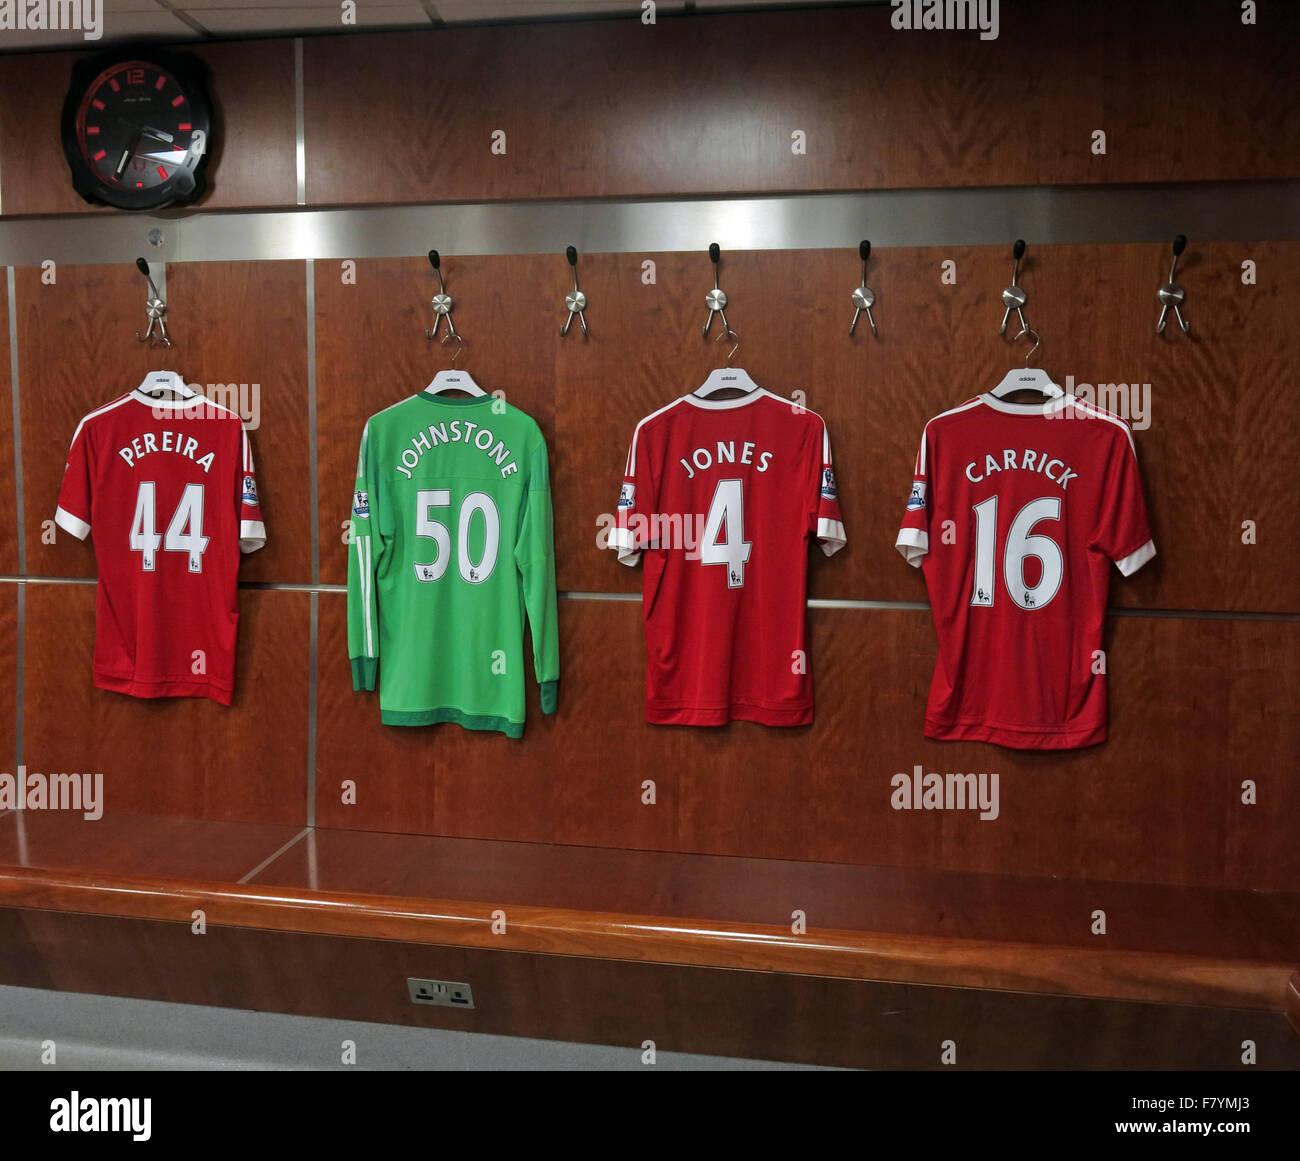 Stretford,England,UK,33,ManchesterUnited,Football,club,Soccer,FIFA,corruption,Sepp Blatter,Bootroom,English,British,champions,red,reds,Premier,League,Premiership,official,hook,35,36,44,hanging,up,Footballer,Sam Johnstone,room,Manchester United,Official Hook,Stretford end,GoTonySmith,ManchesterUnited,MUFC,Mancester,MU,old,Trafford,theatre,of,dreams,Lancs,Lancashire,RedDevils,Red,Devils,Football,Club,FC,allseater,all-seater,association,away,balls,betting,britain,british,champions,changing,coaches,competition,culture,cups,division,documentary,dressing,england,english,fans,fixtures,game,goals,ground,heritage,history,home,homesoffootball,hooliganism,justice,kick,kick-off,league,managers,midweek,pitch,players,police,premier,promotion,referees,regulations,relegation,results,room,roots,rules,saturday,saturdays,scorers,season,seated,seater,seating,shinpads,shirt,shirts,sizes,sky,skysports,soccer,social,socks,sponsors,sport,stadia,stadium,standing,sundays,sunday,system,tables,team,terraces,tradition,trainers,Adidas,Puma,Buy Pictures of,Buy Images Of,Old Trafford,Theatre of Dreams,Theater of dreams,Red Devils